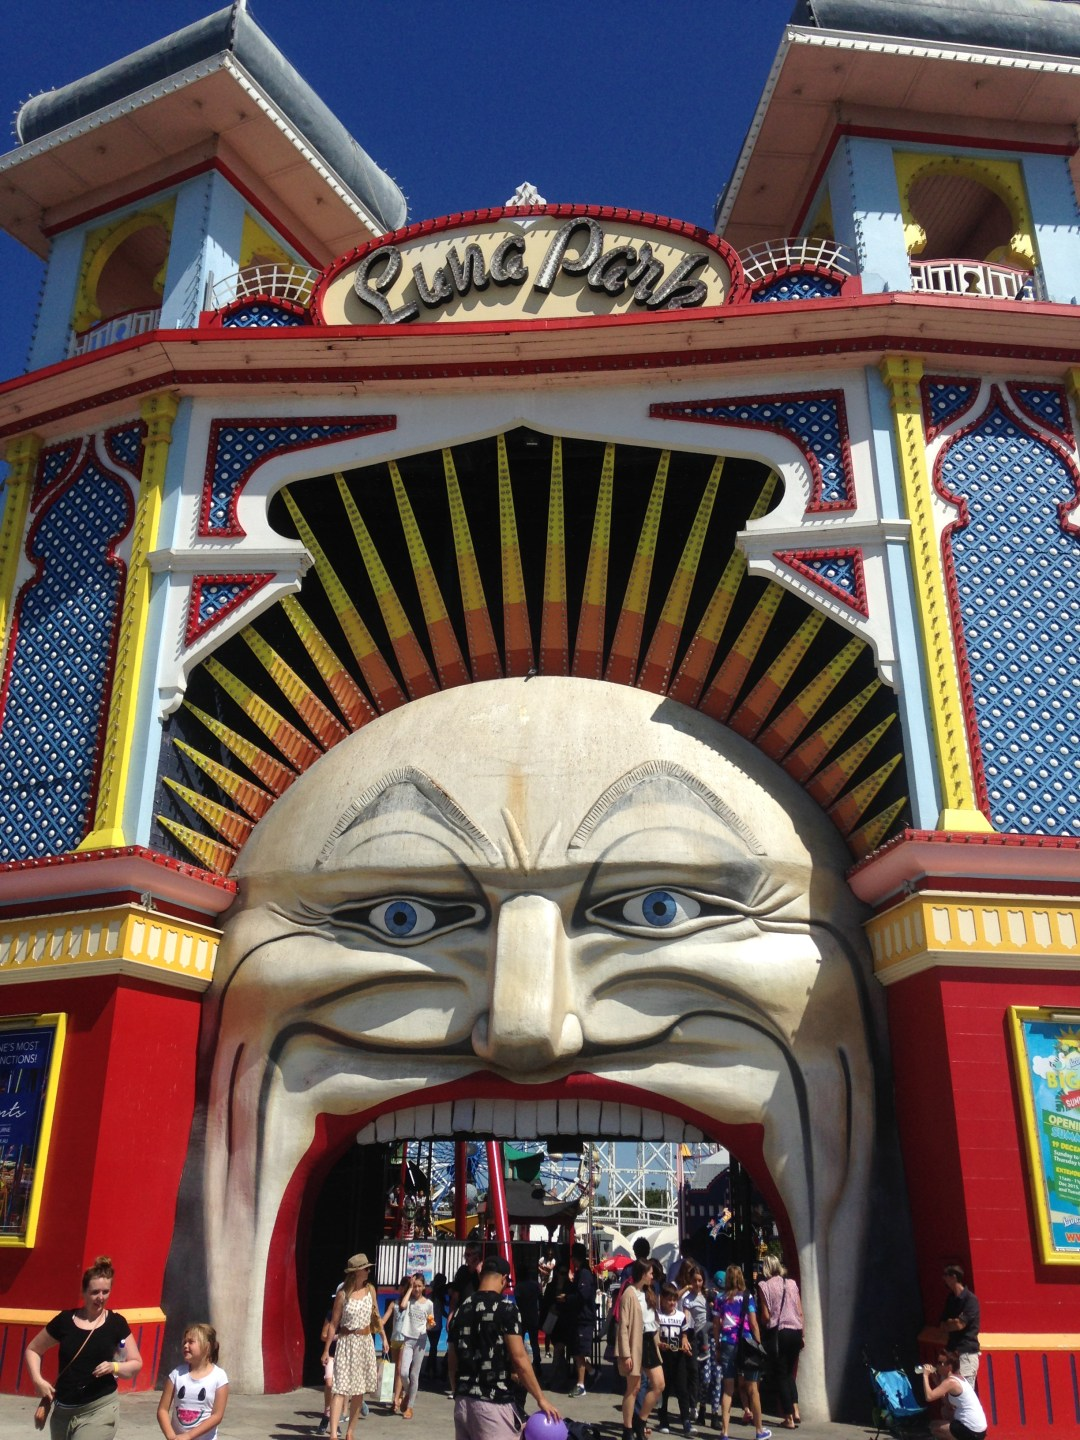 Entrance to Luna Park theme park, depicting a brightly coloured clown's face with the mouth as an entrance.